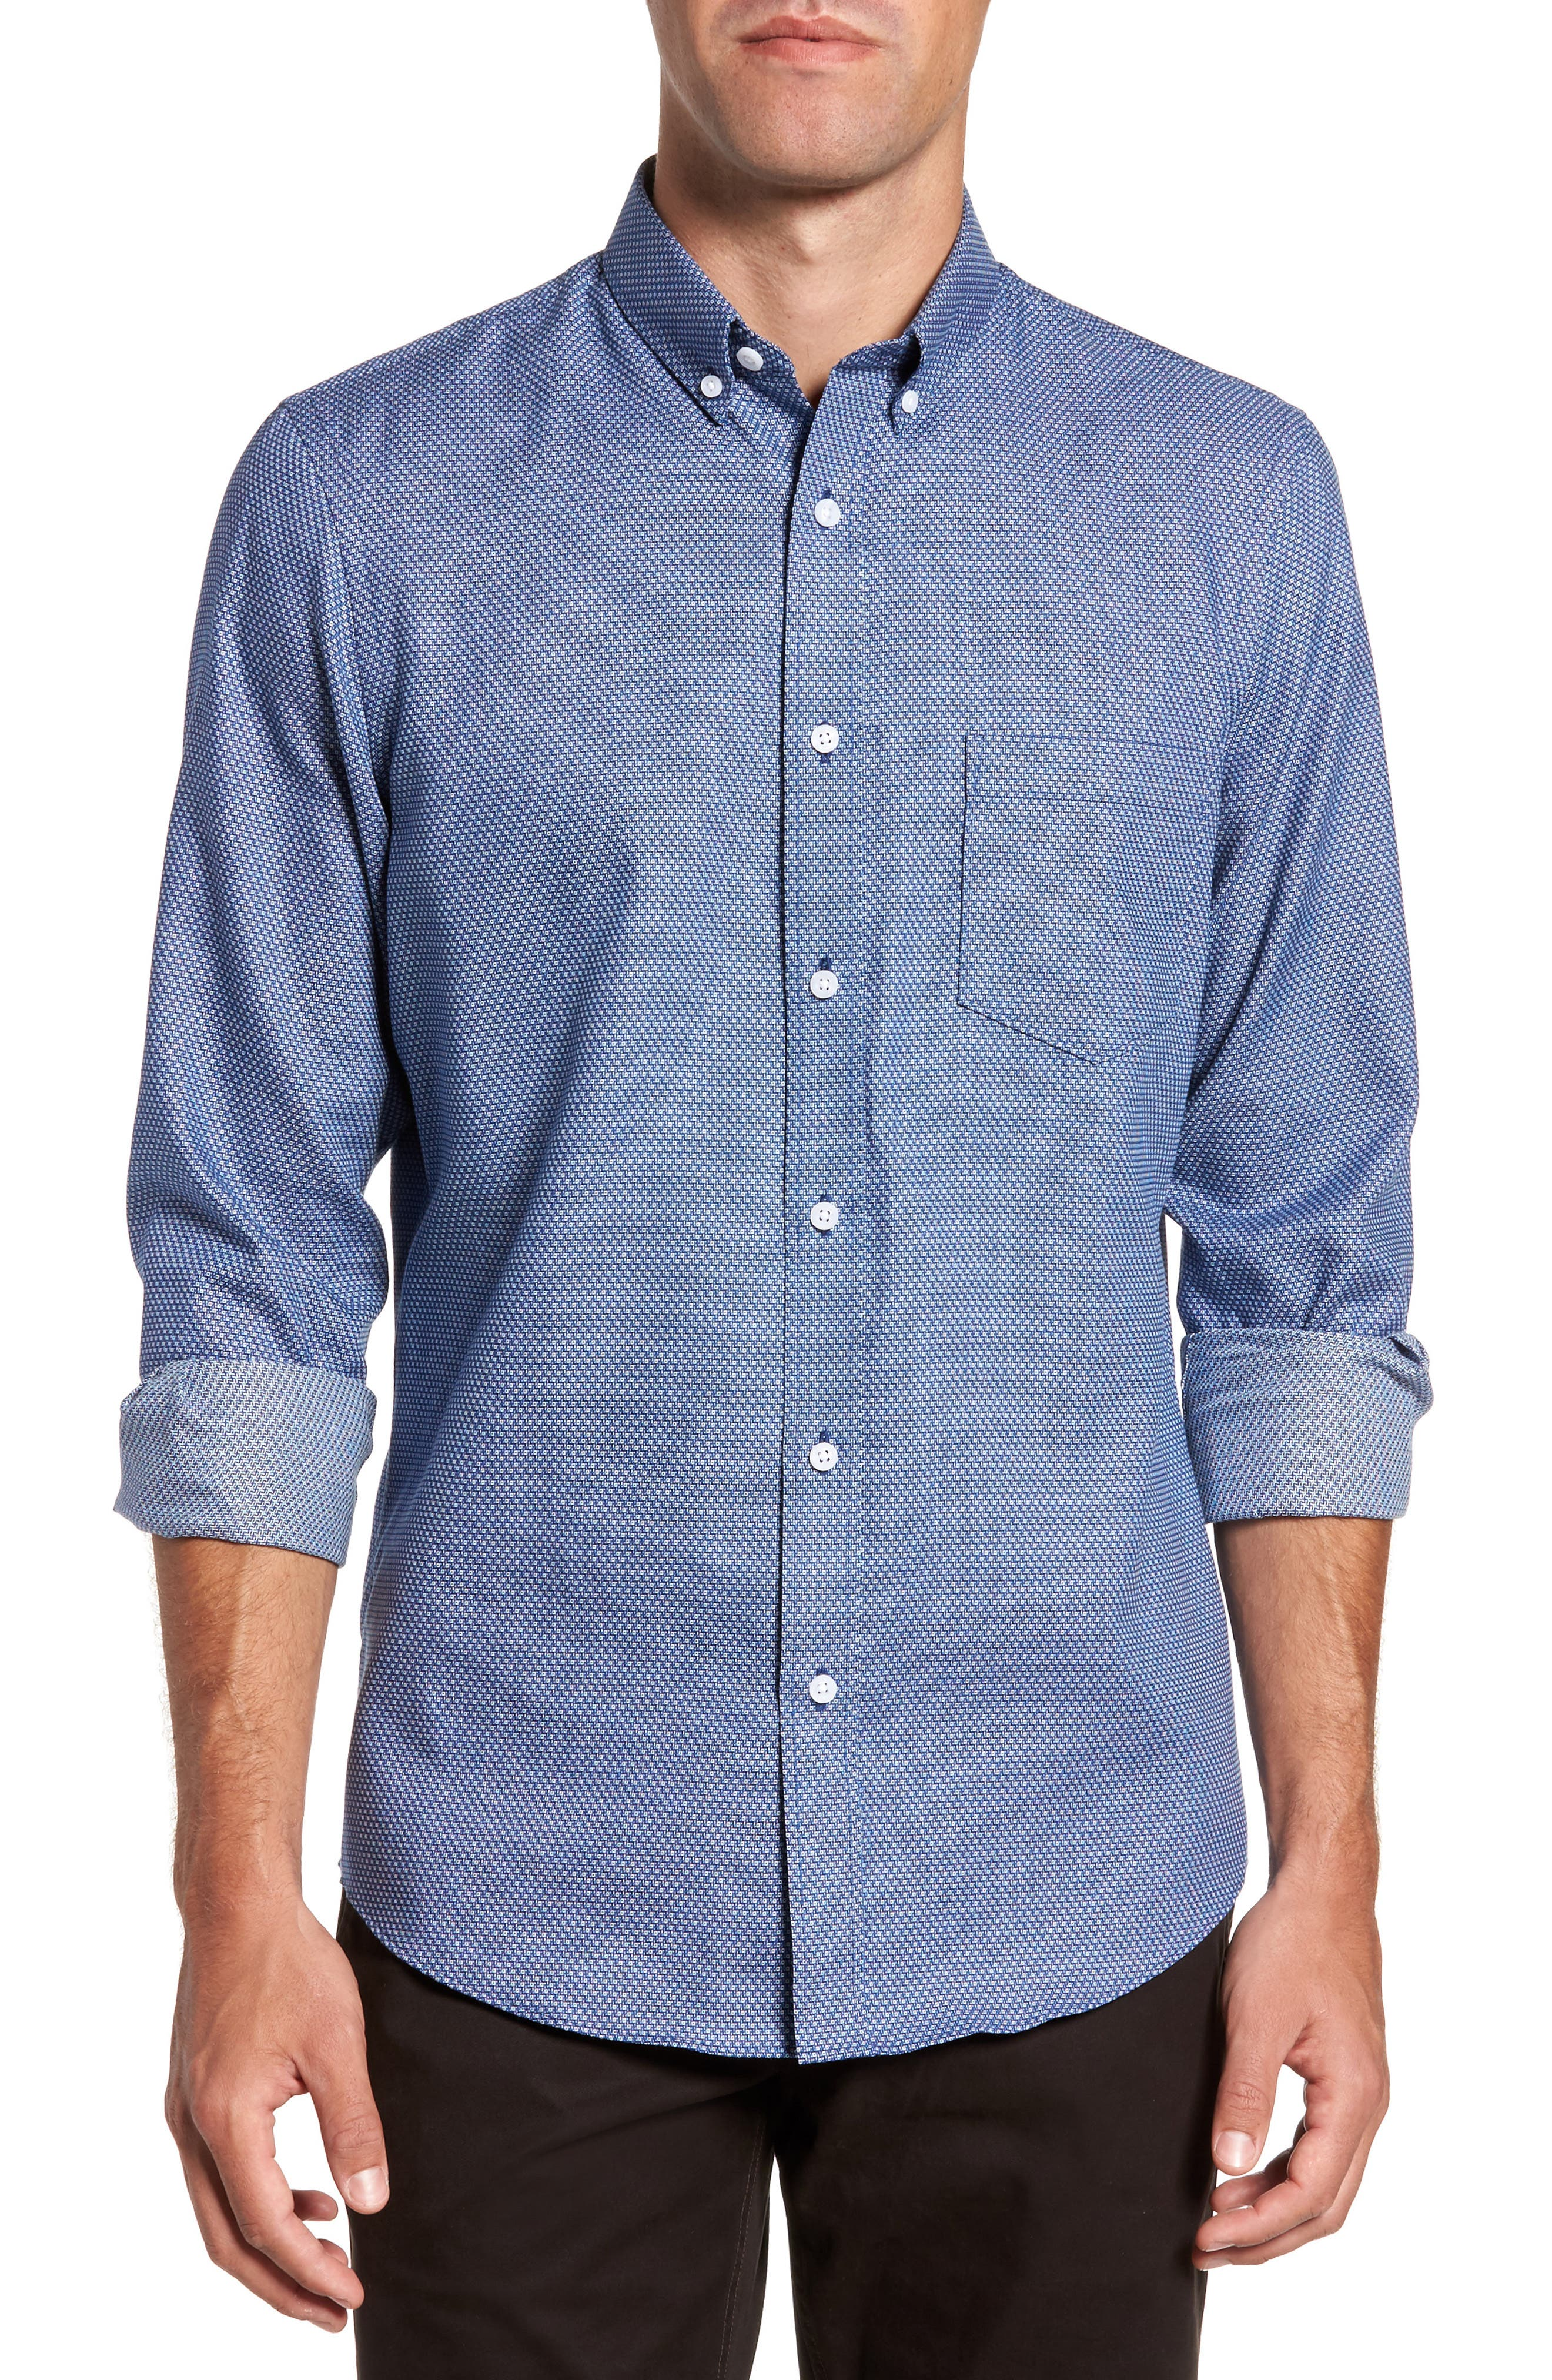 Alternate Image 1 Selected - Nordstrom Men's Shop Non-Iron Regular Fit Print Sport Shirt (Tall)